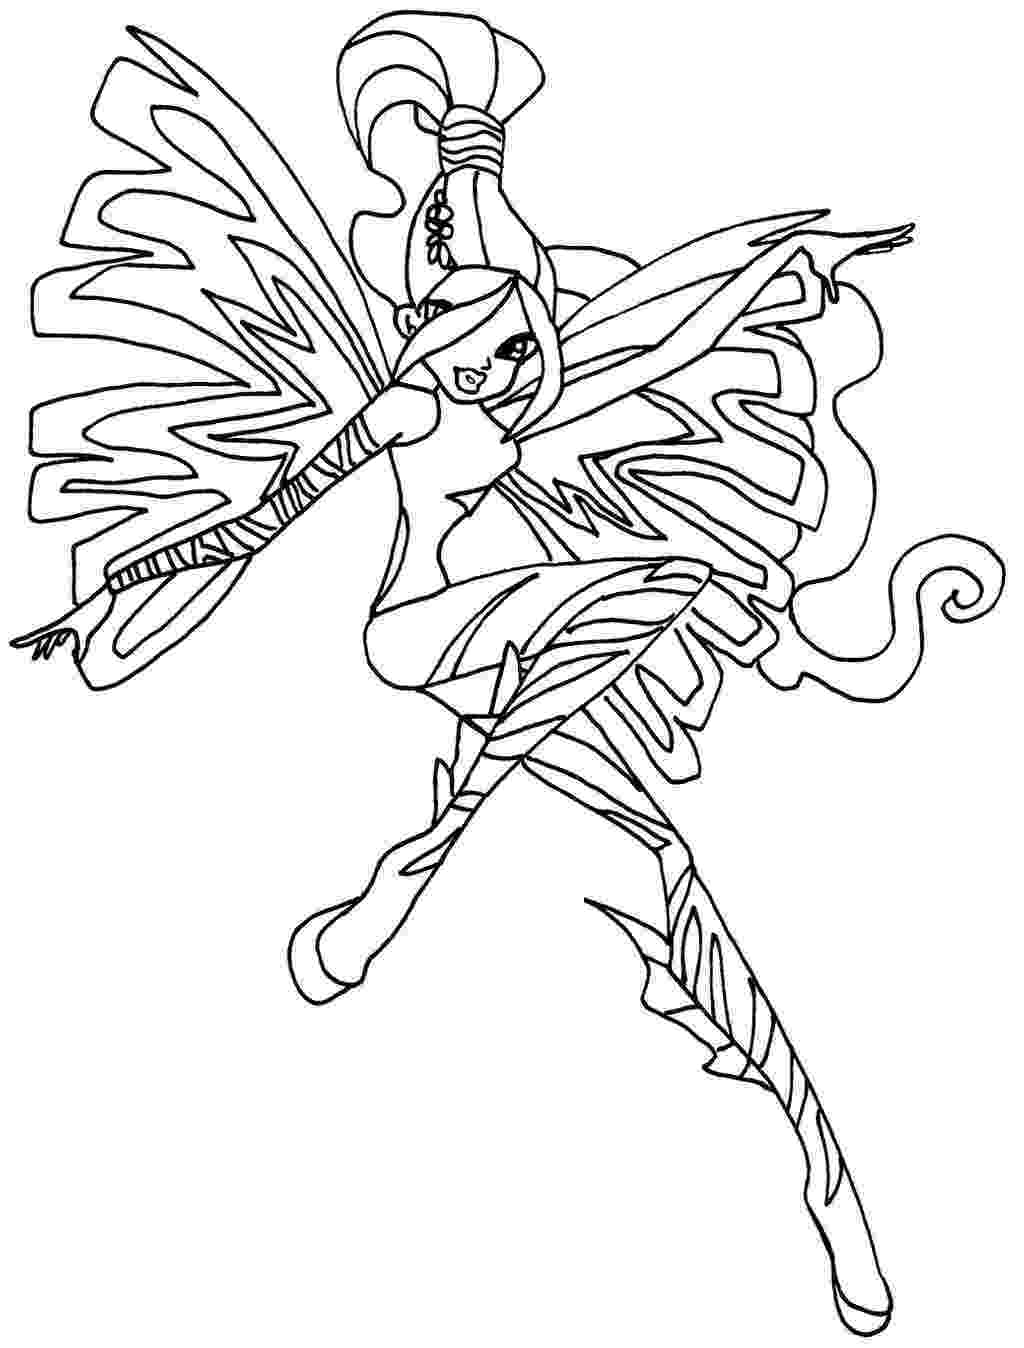 winx club coloring pages layla layla gardenia coloring page free printable coloring pages layla club pages winx coloring